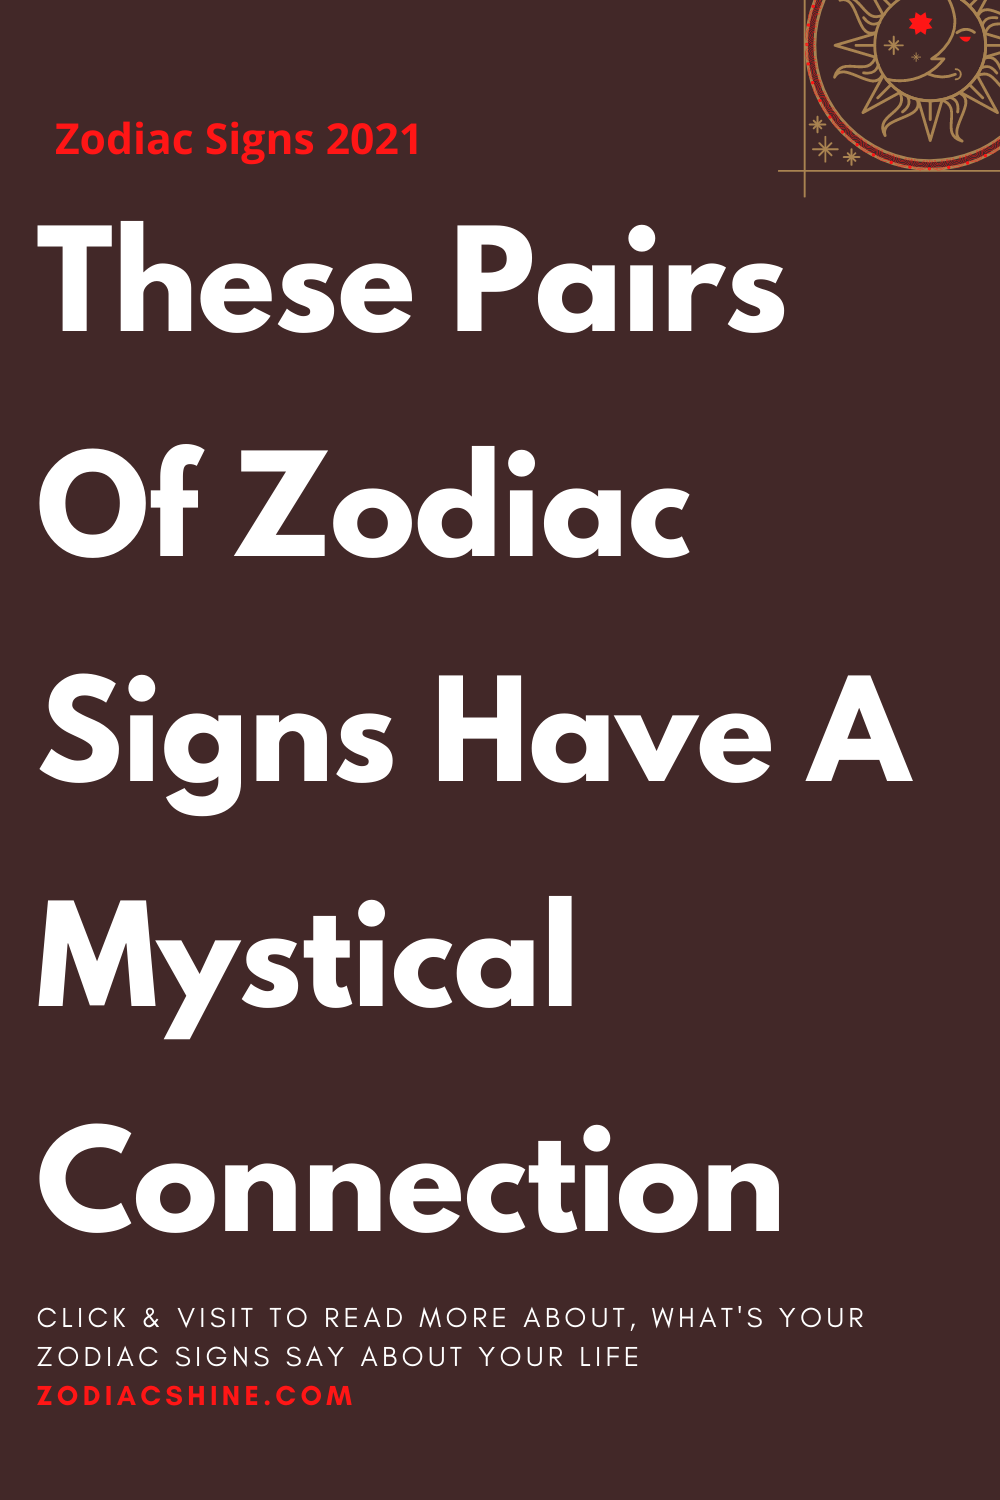 These Pairs Of Zodiac Signs Have A Mystical Connection